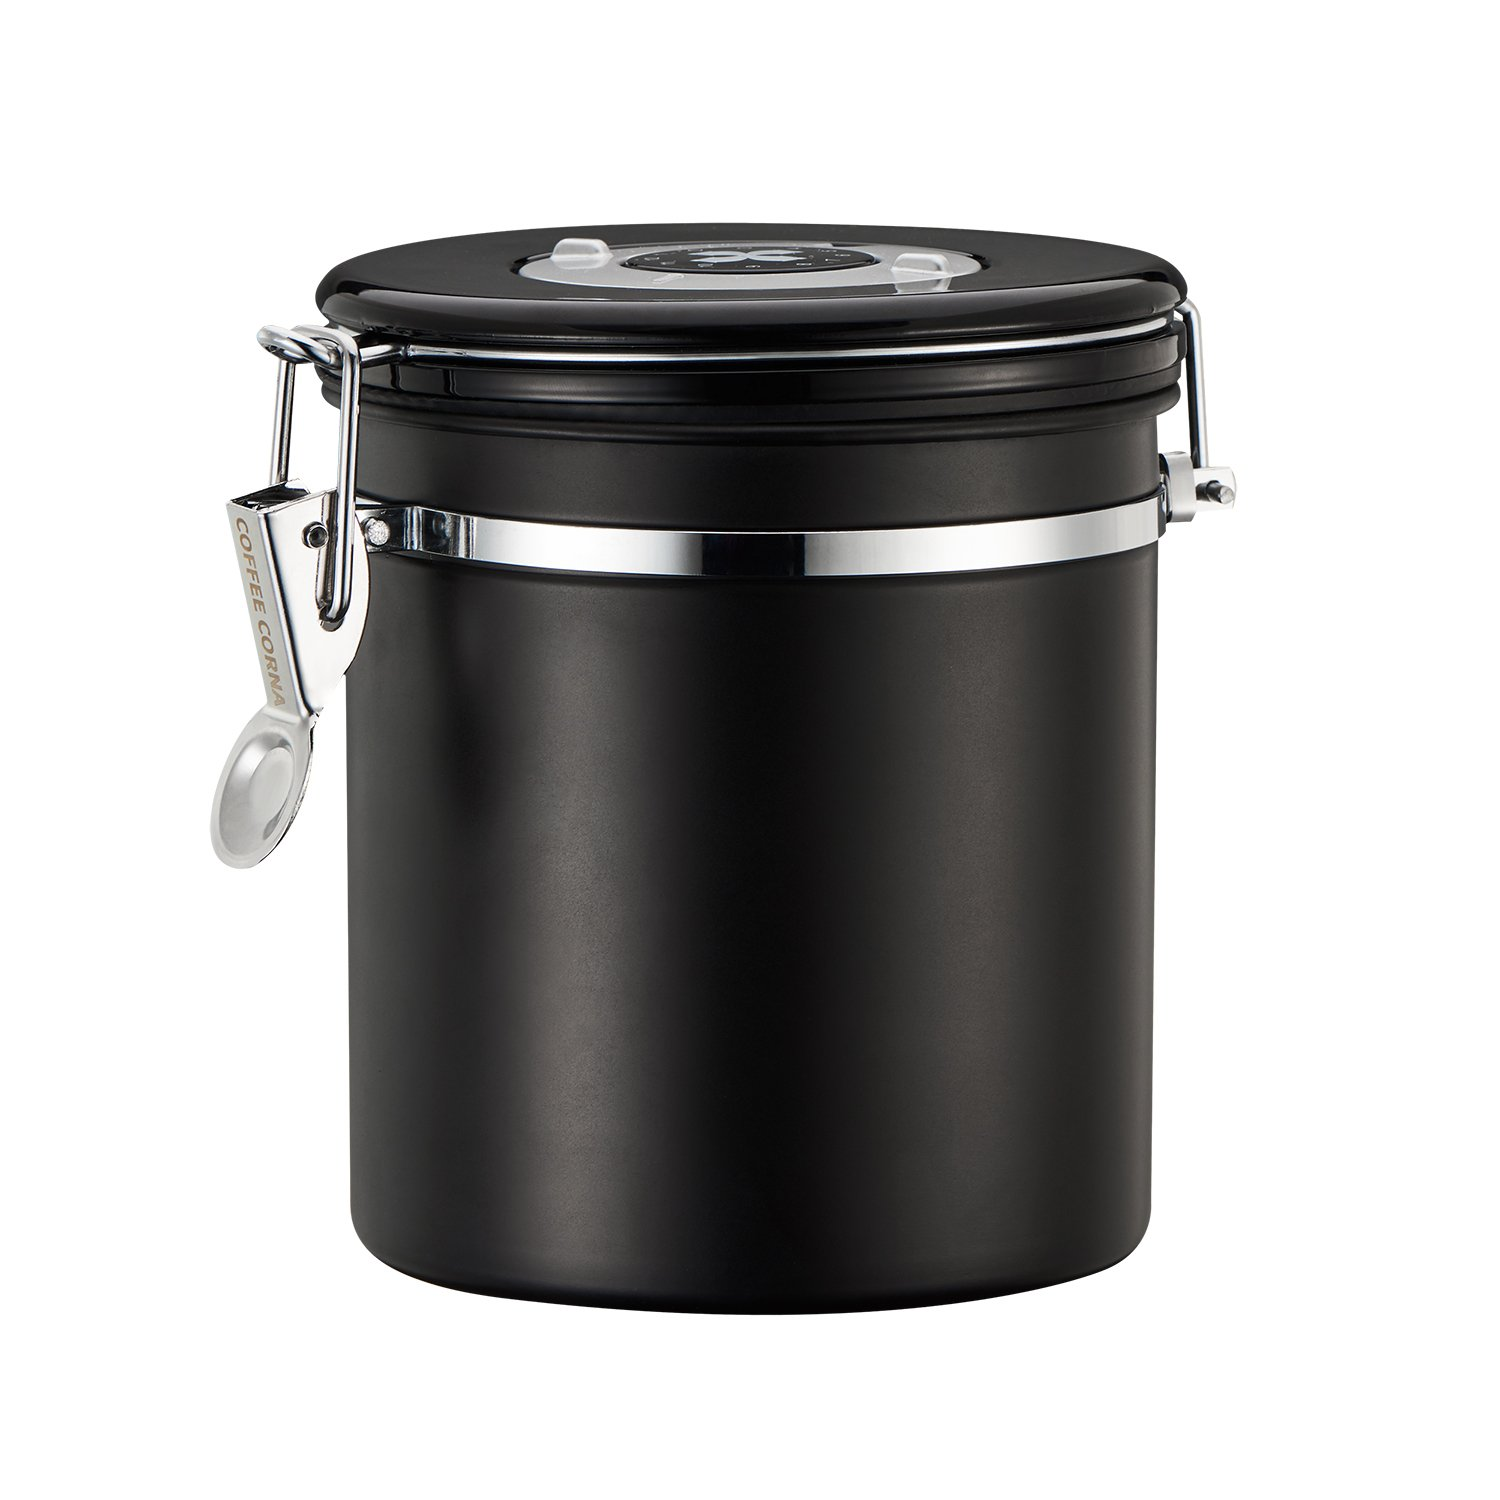 Coffee Canister with 30 ml Scoop- Airtight Container Airtight Lid - Stainless Steel Food Storage Canister - Built-in One Way Valve Blocks CO2 From Ruining Coffee Flavor - Built-in Freshness Calendar